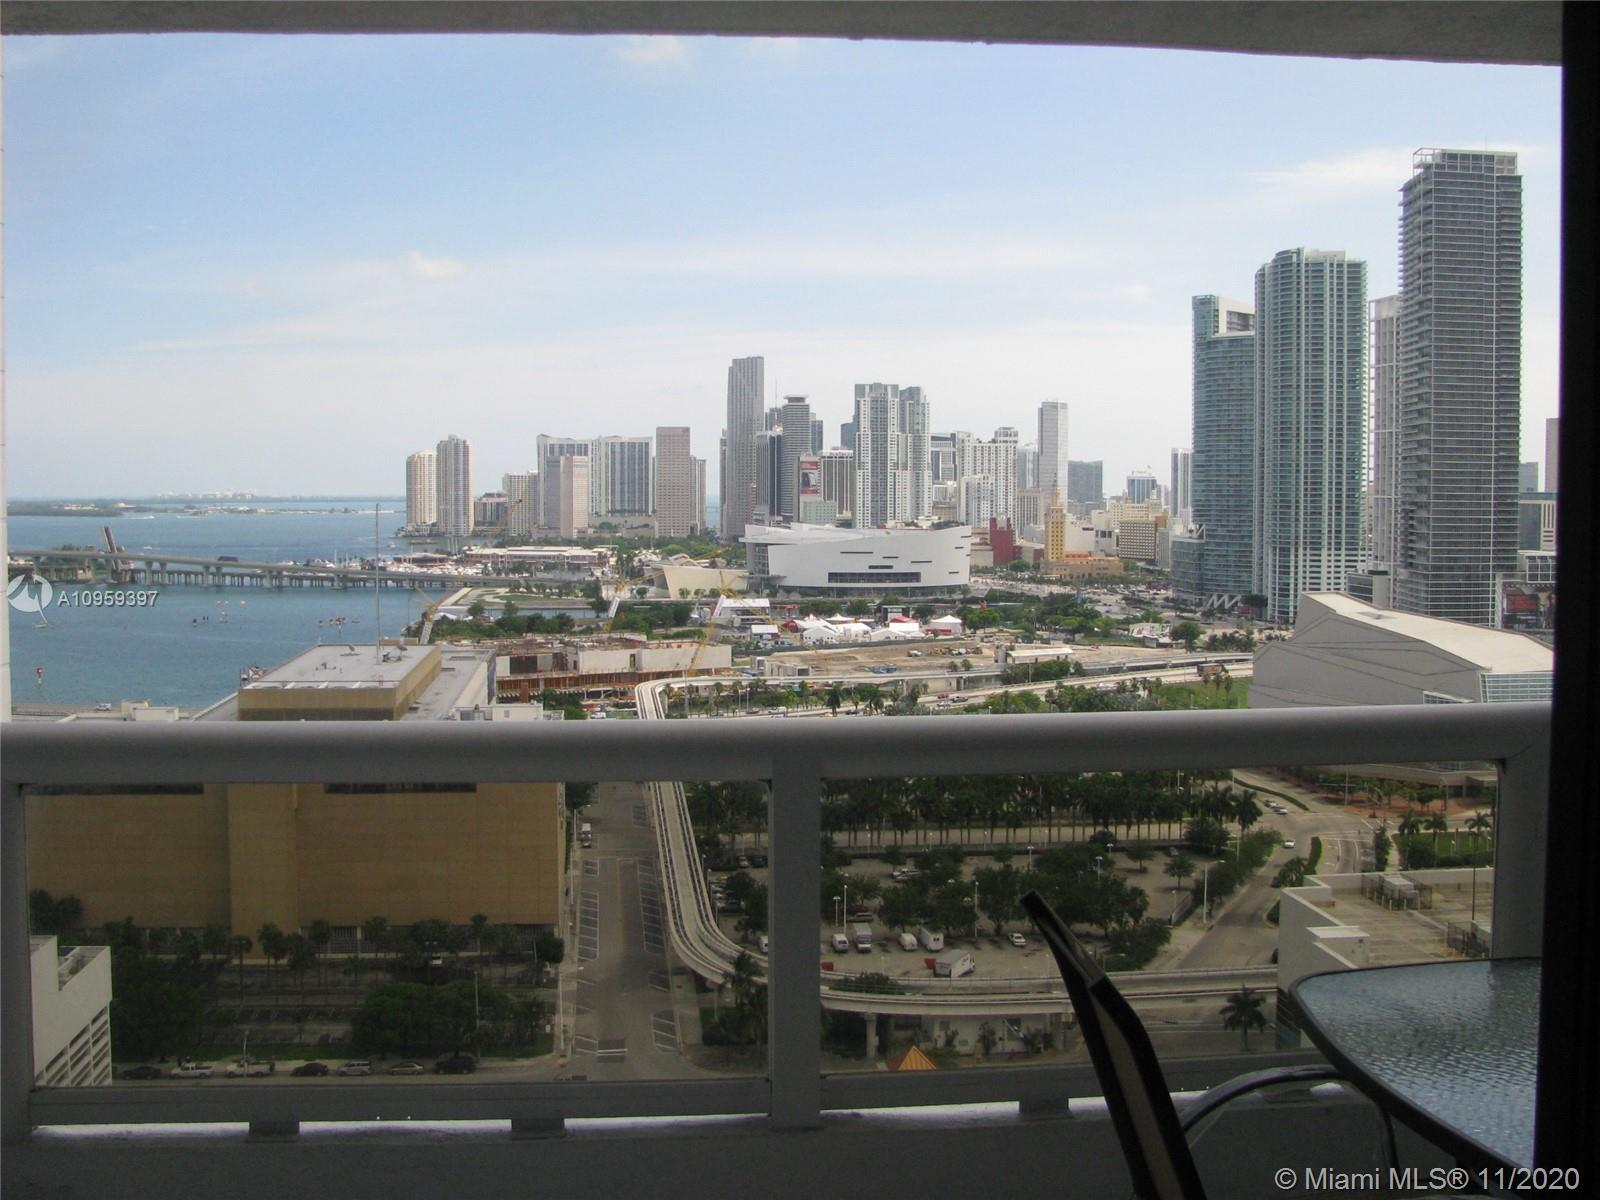 2 Bedrooms, 2 baths with great views of Bay and downtown skyline at The Grand, well updated. The Gra